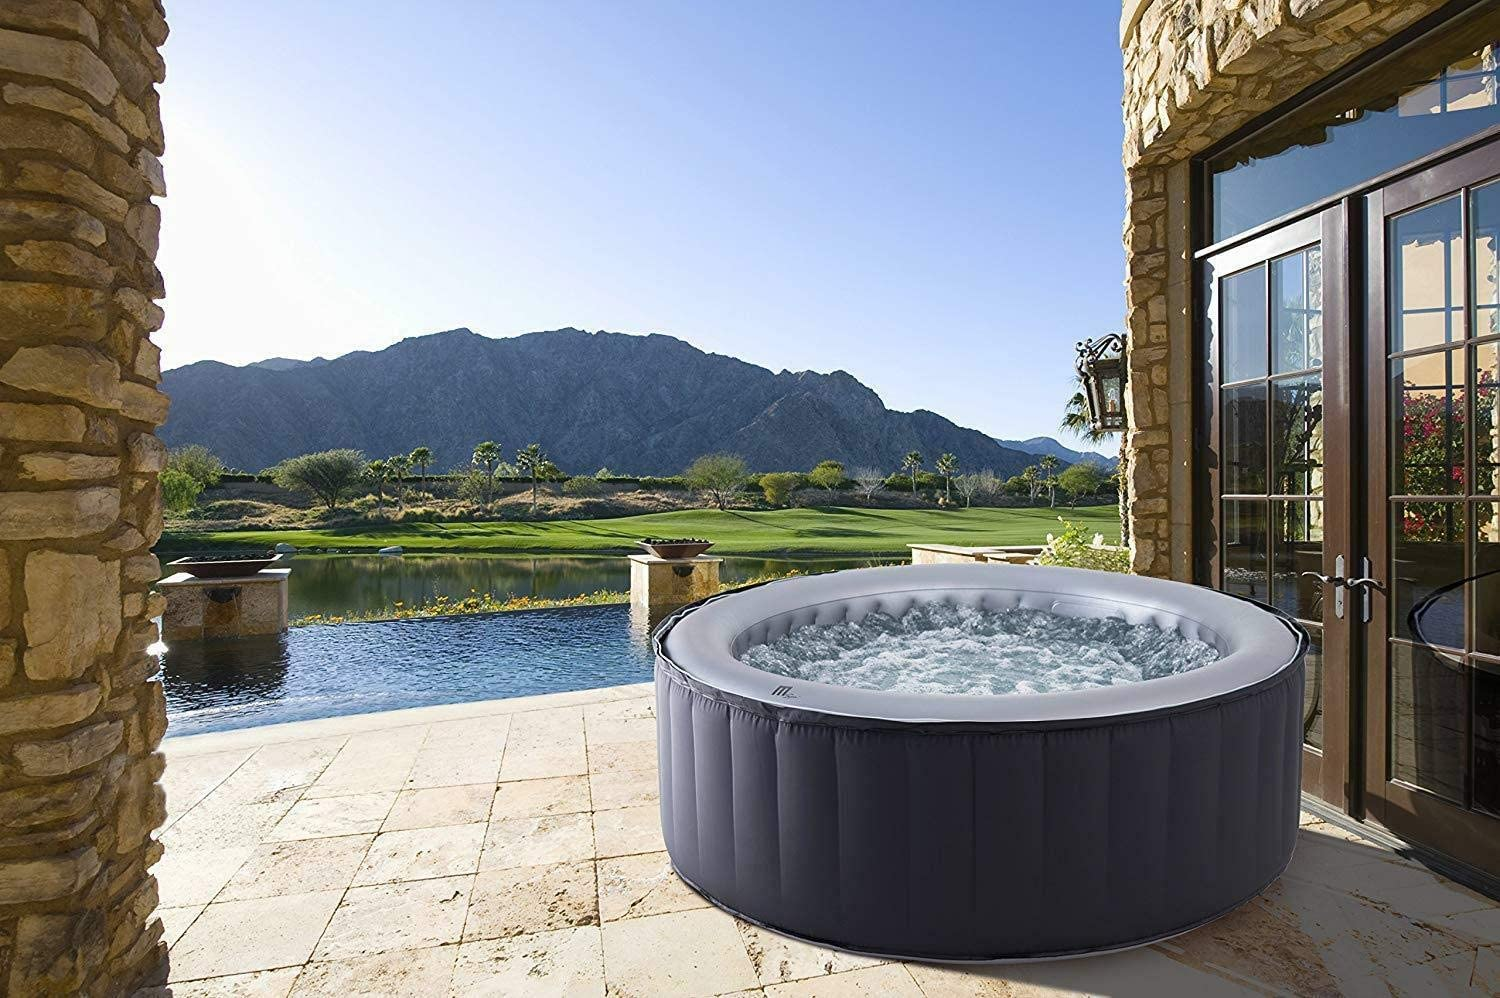 MSpa Silver Cloud Hot Tub for 4 people